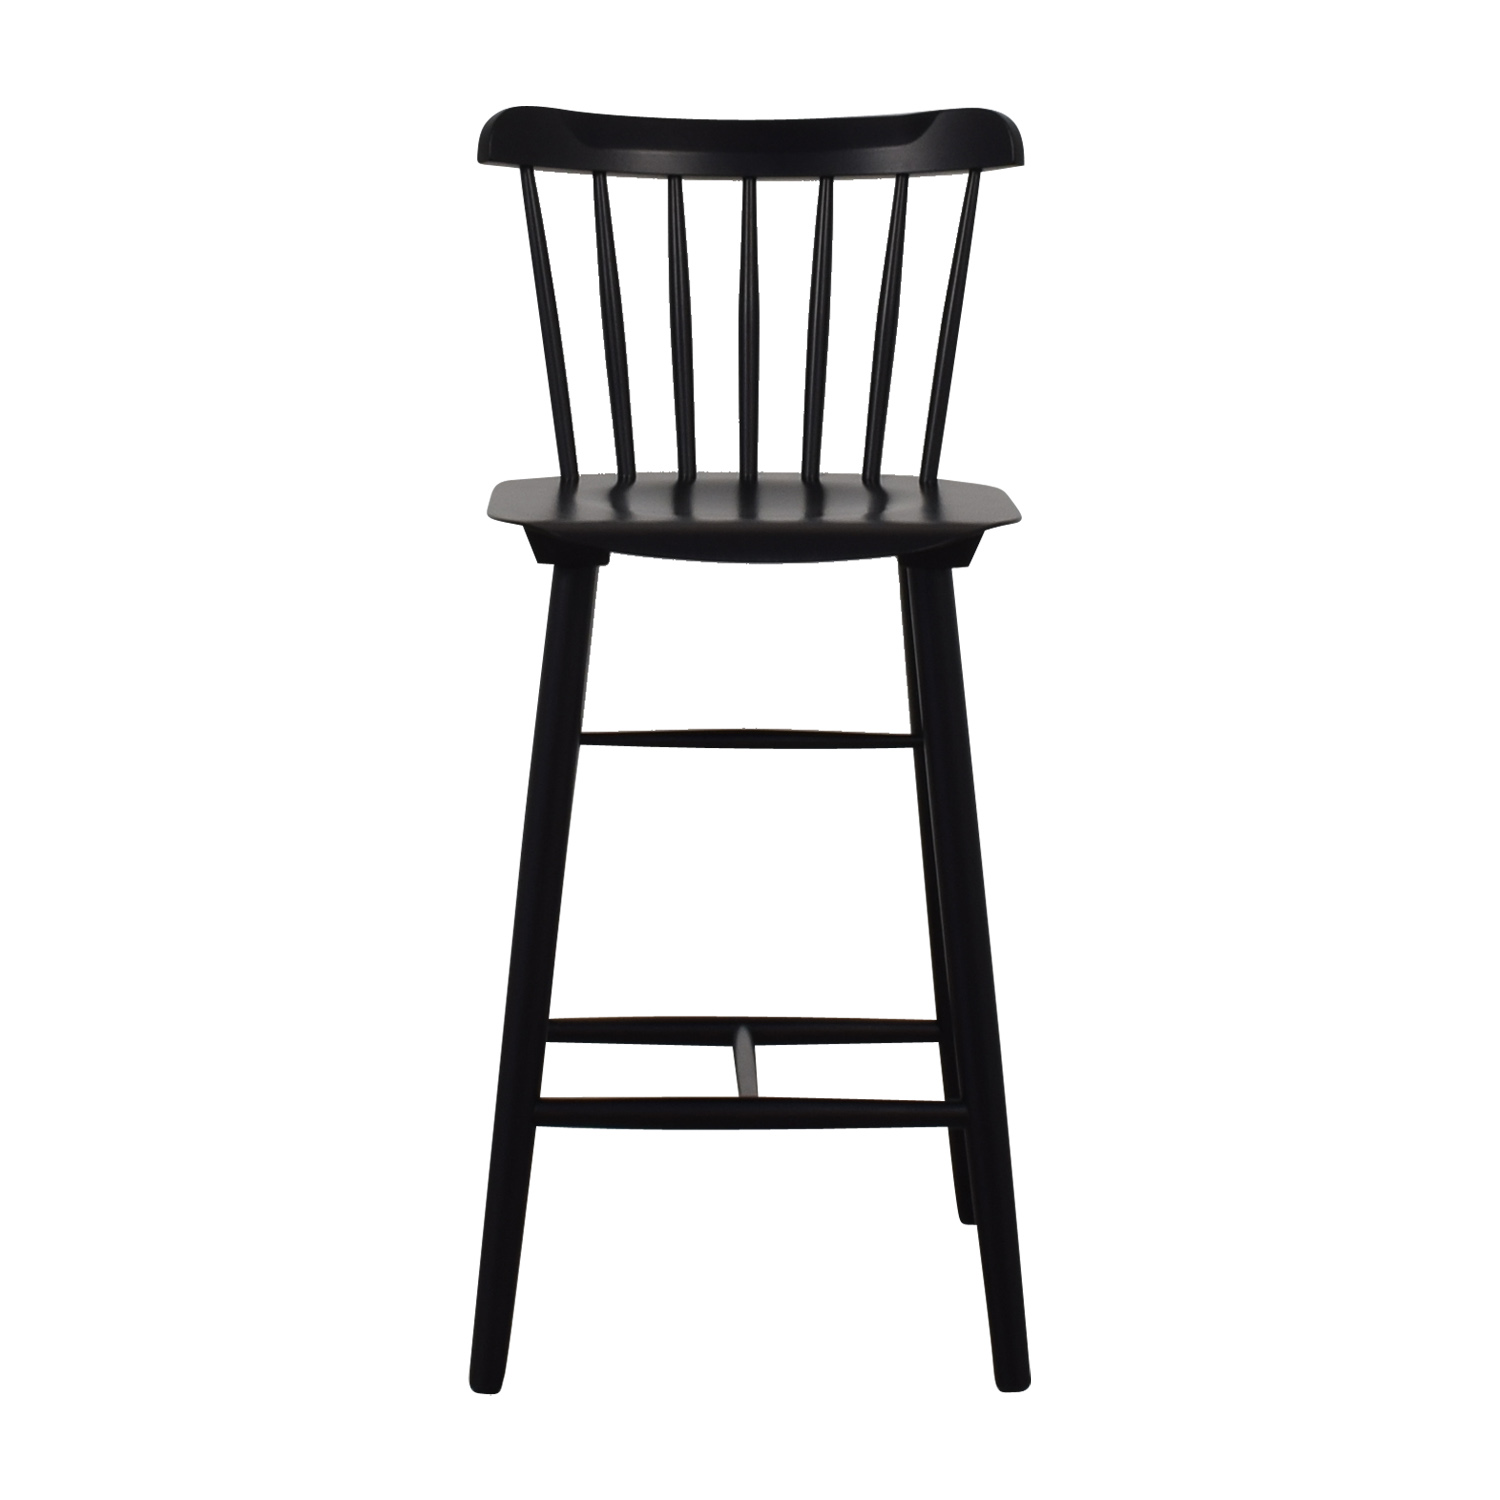 84 off design within reach design within reach salt counter stool chairs